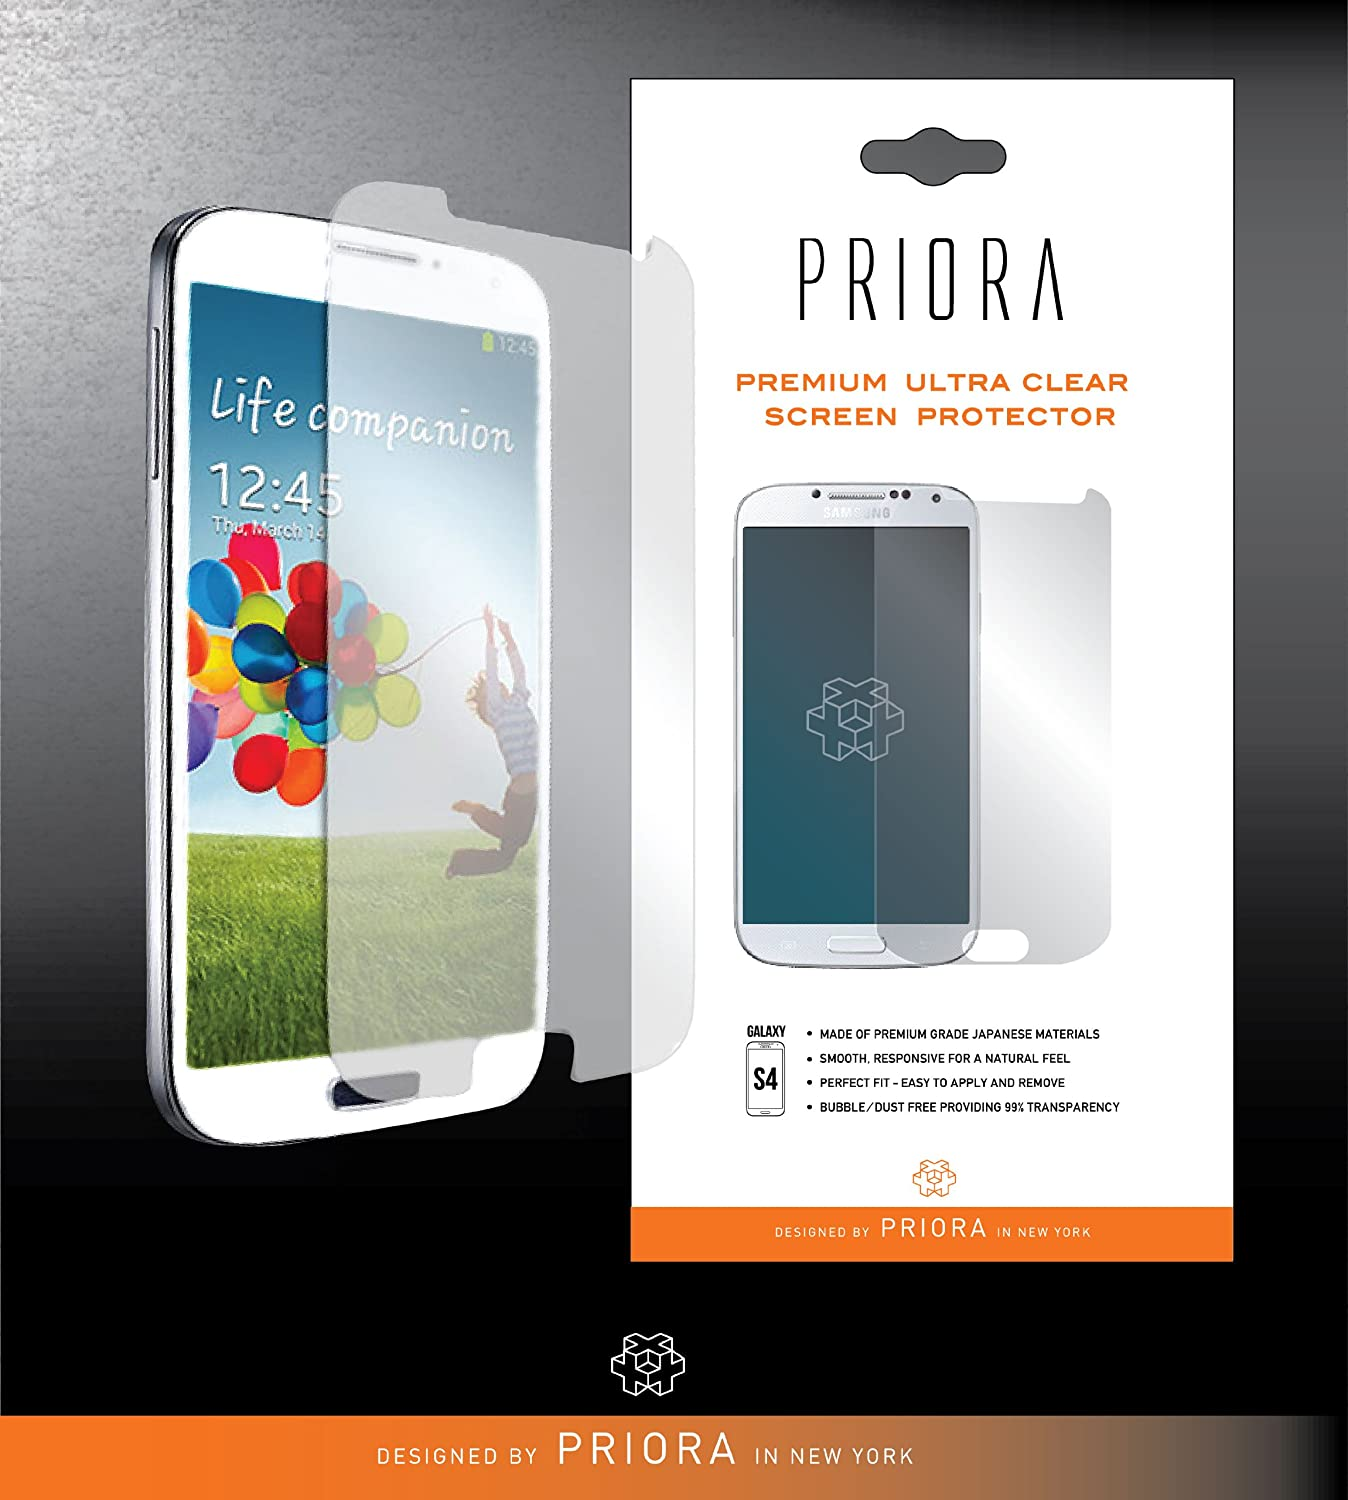 Priora Design Samsung Galaxy S4 Premium Ultra Clear Screen Protector - 3 Pack (Lifetime Warranty)